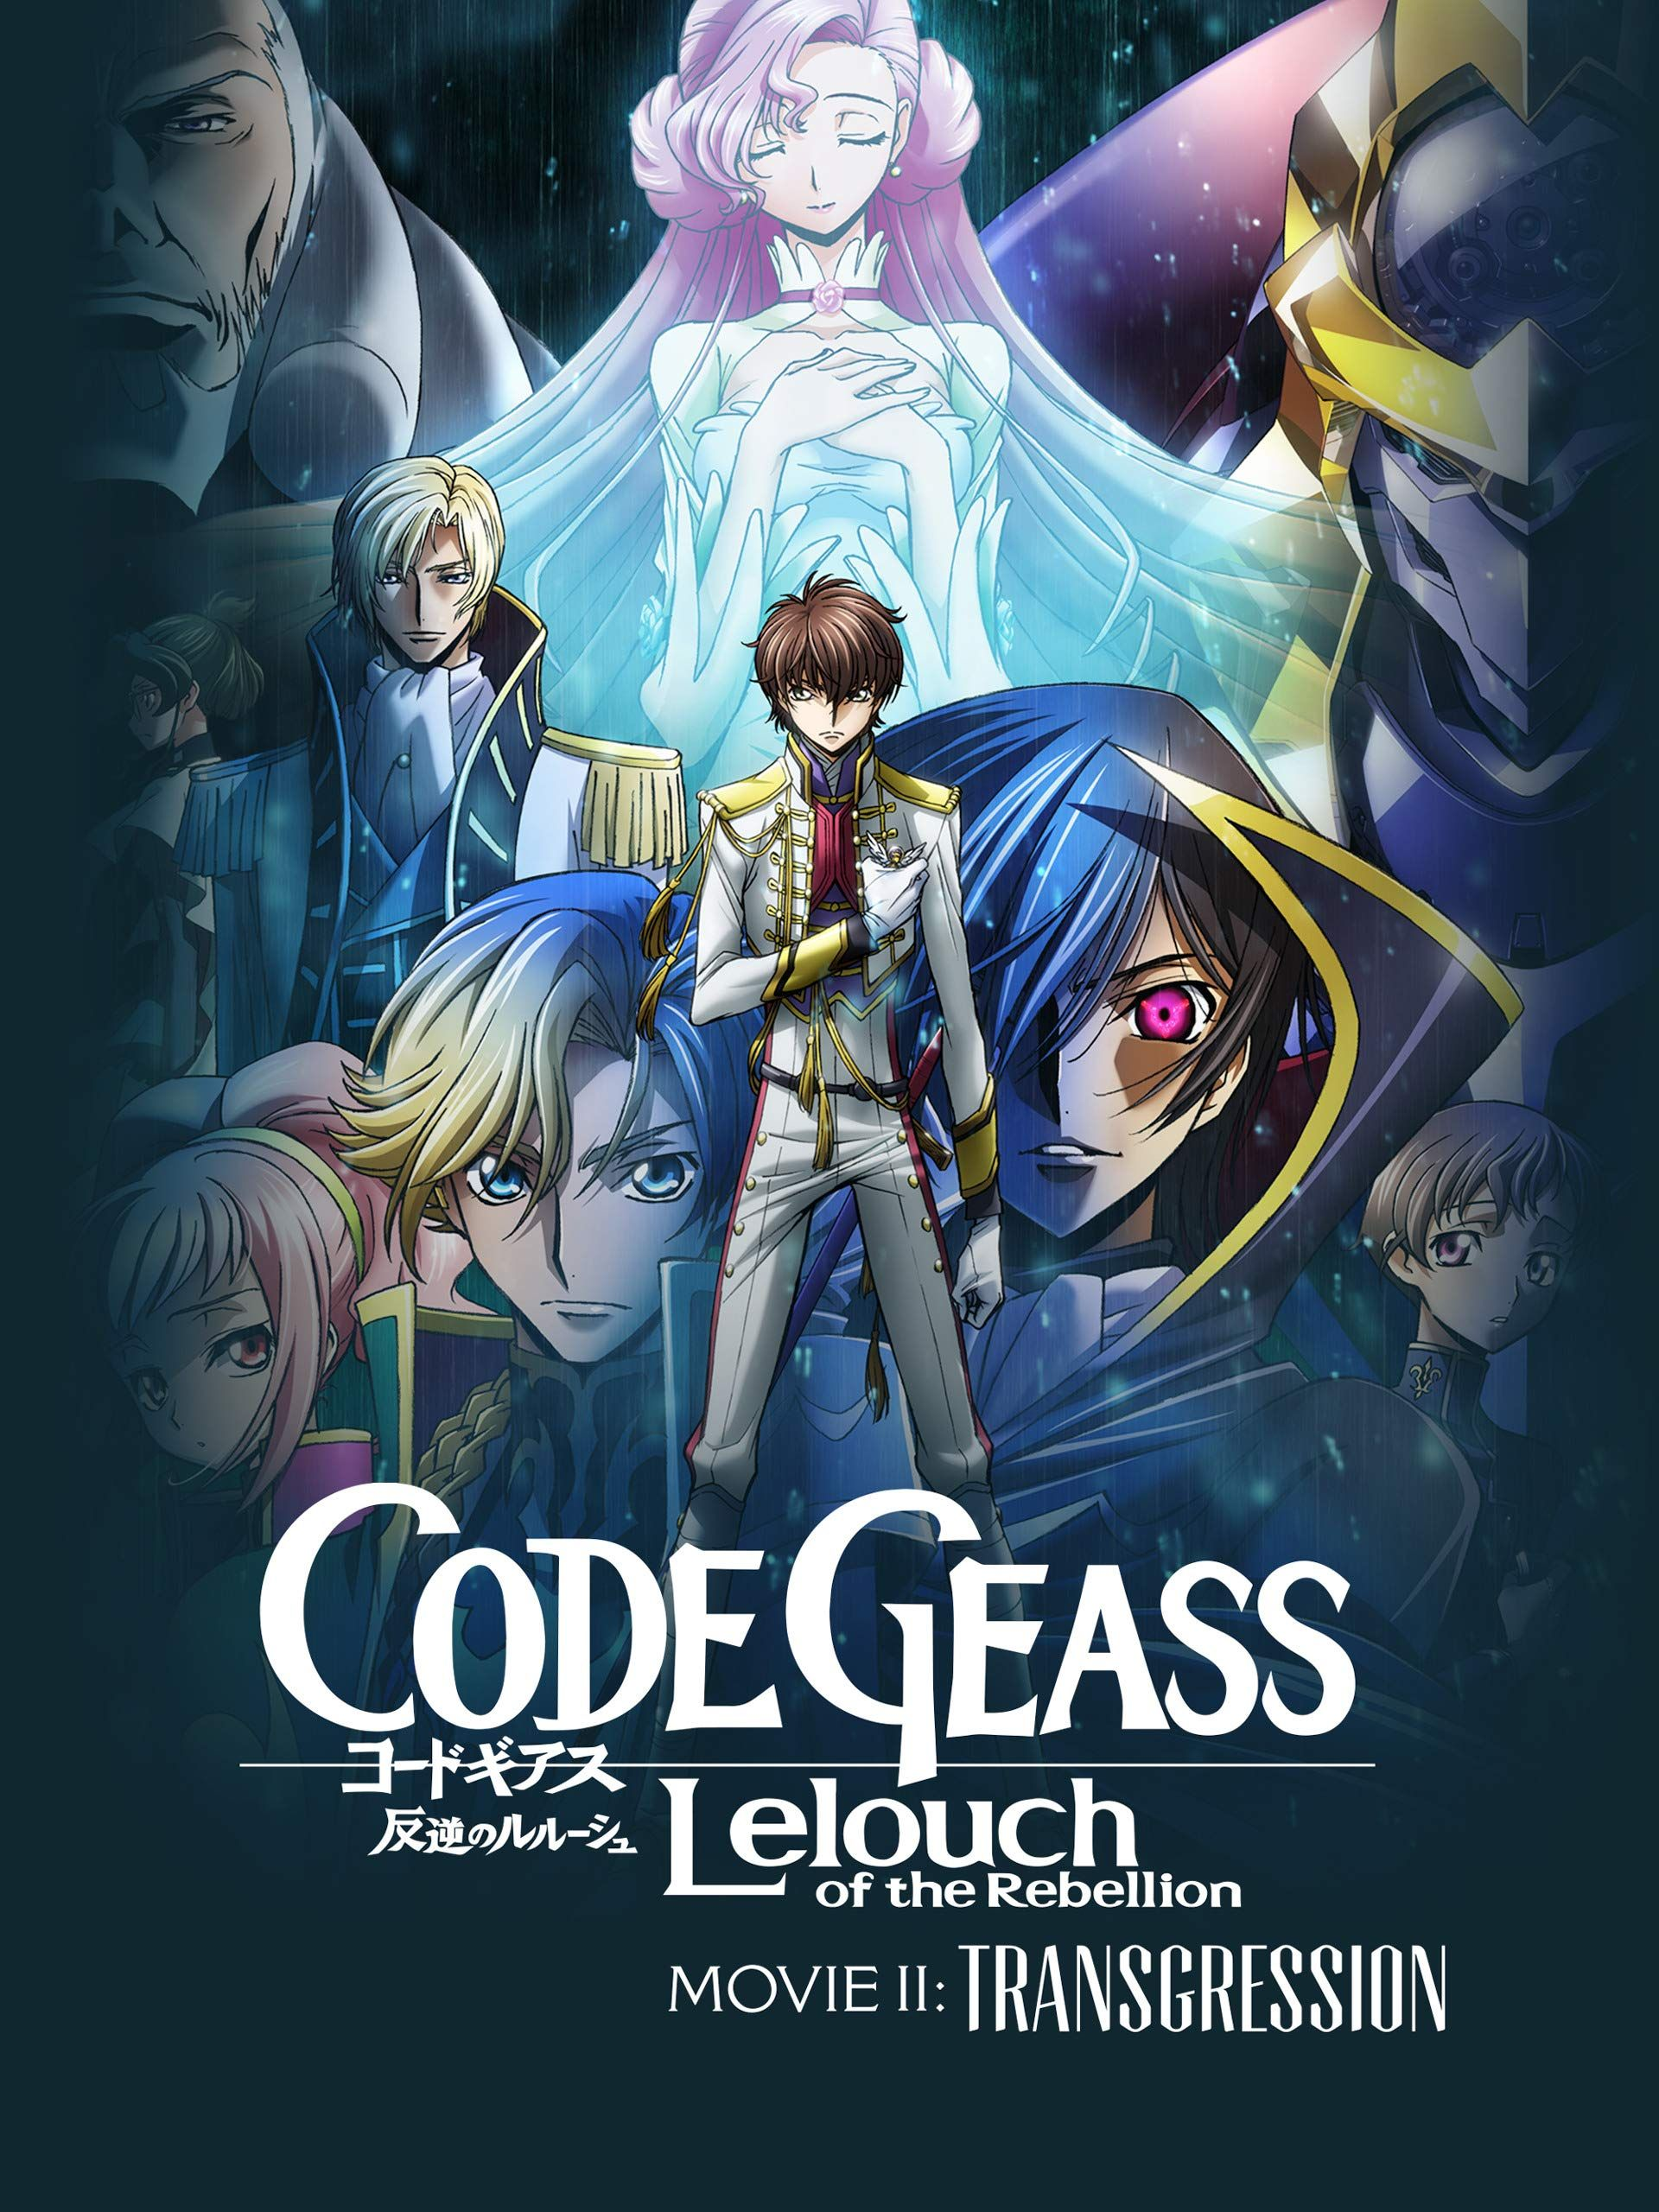 Anime Movie Review 'Code Geass Lelouch of the Rebellion